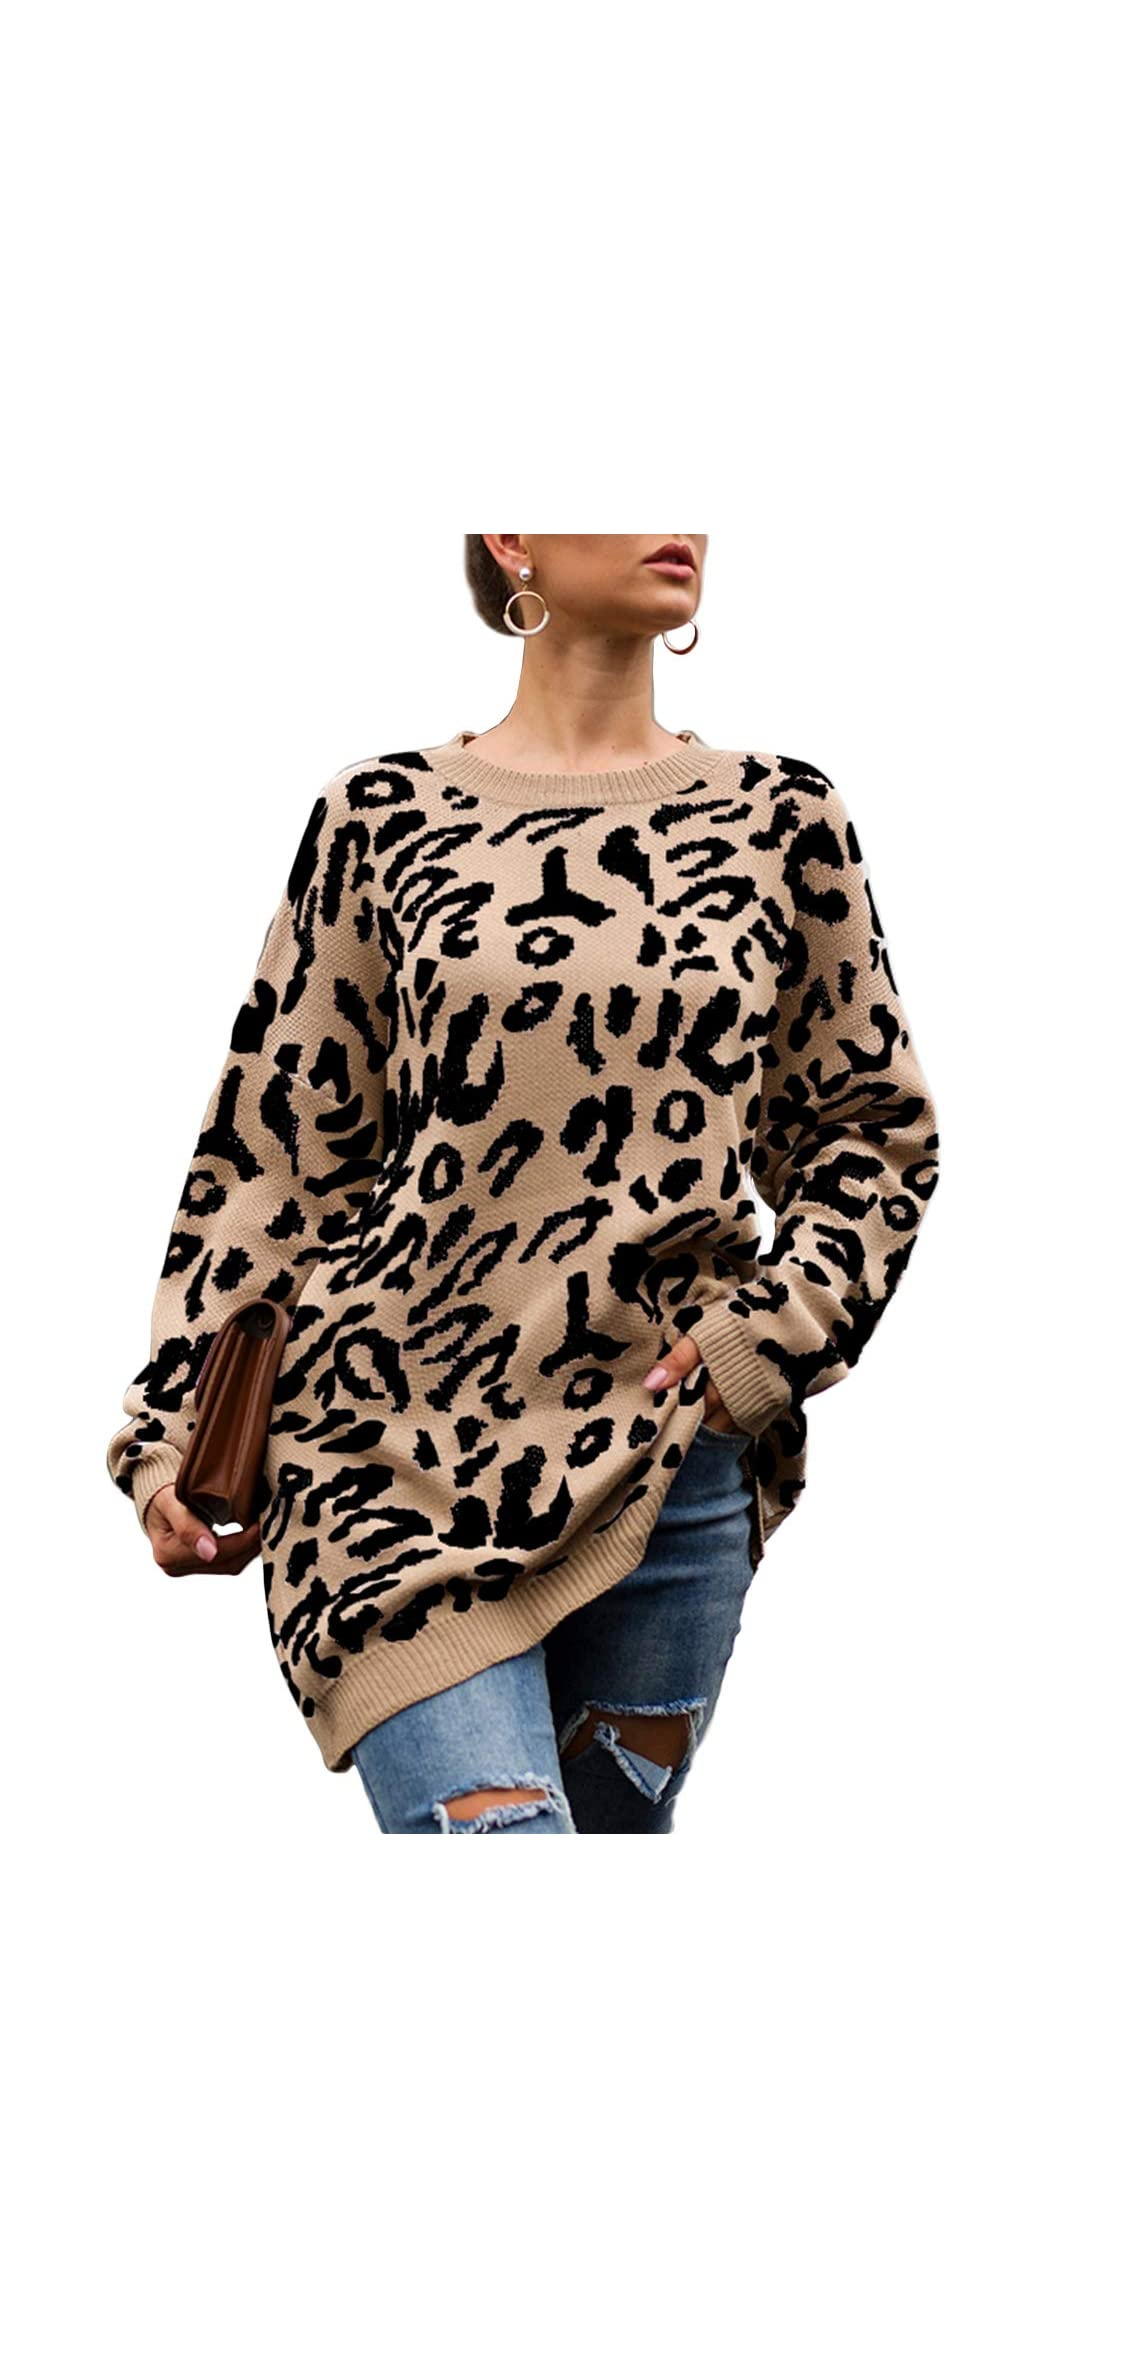 Women's Casual Leopard Print Pullover Sweater Long Tunic